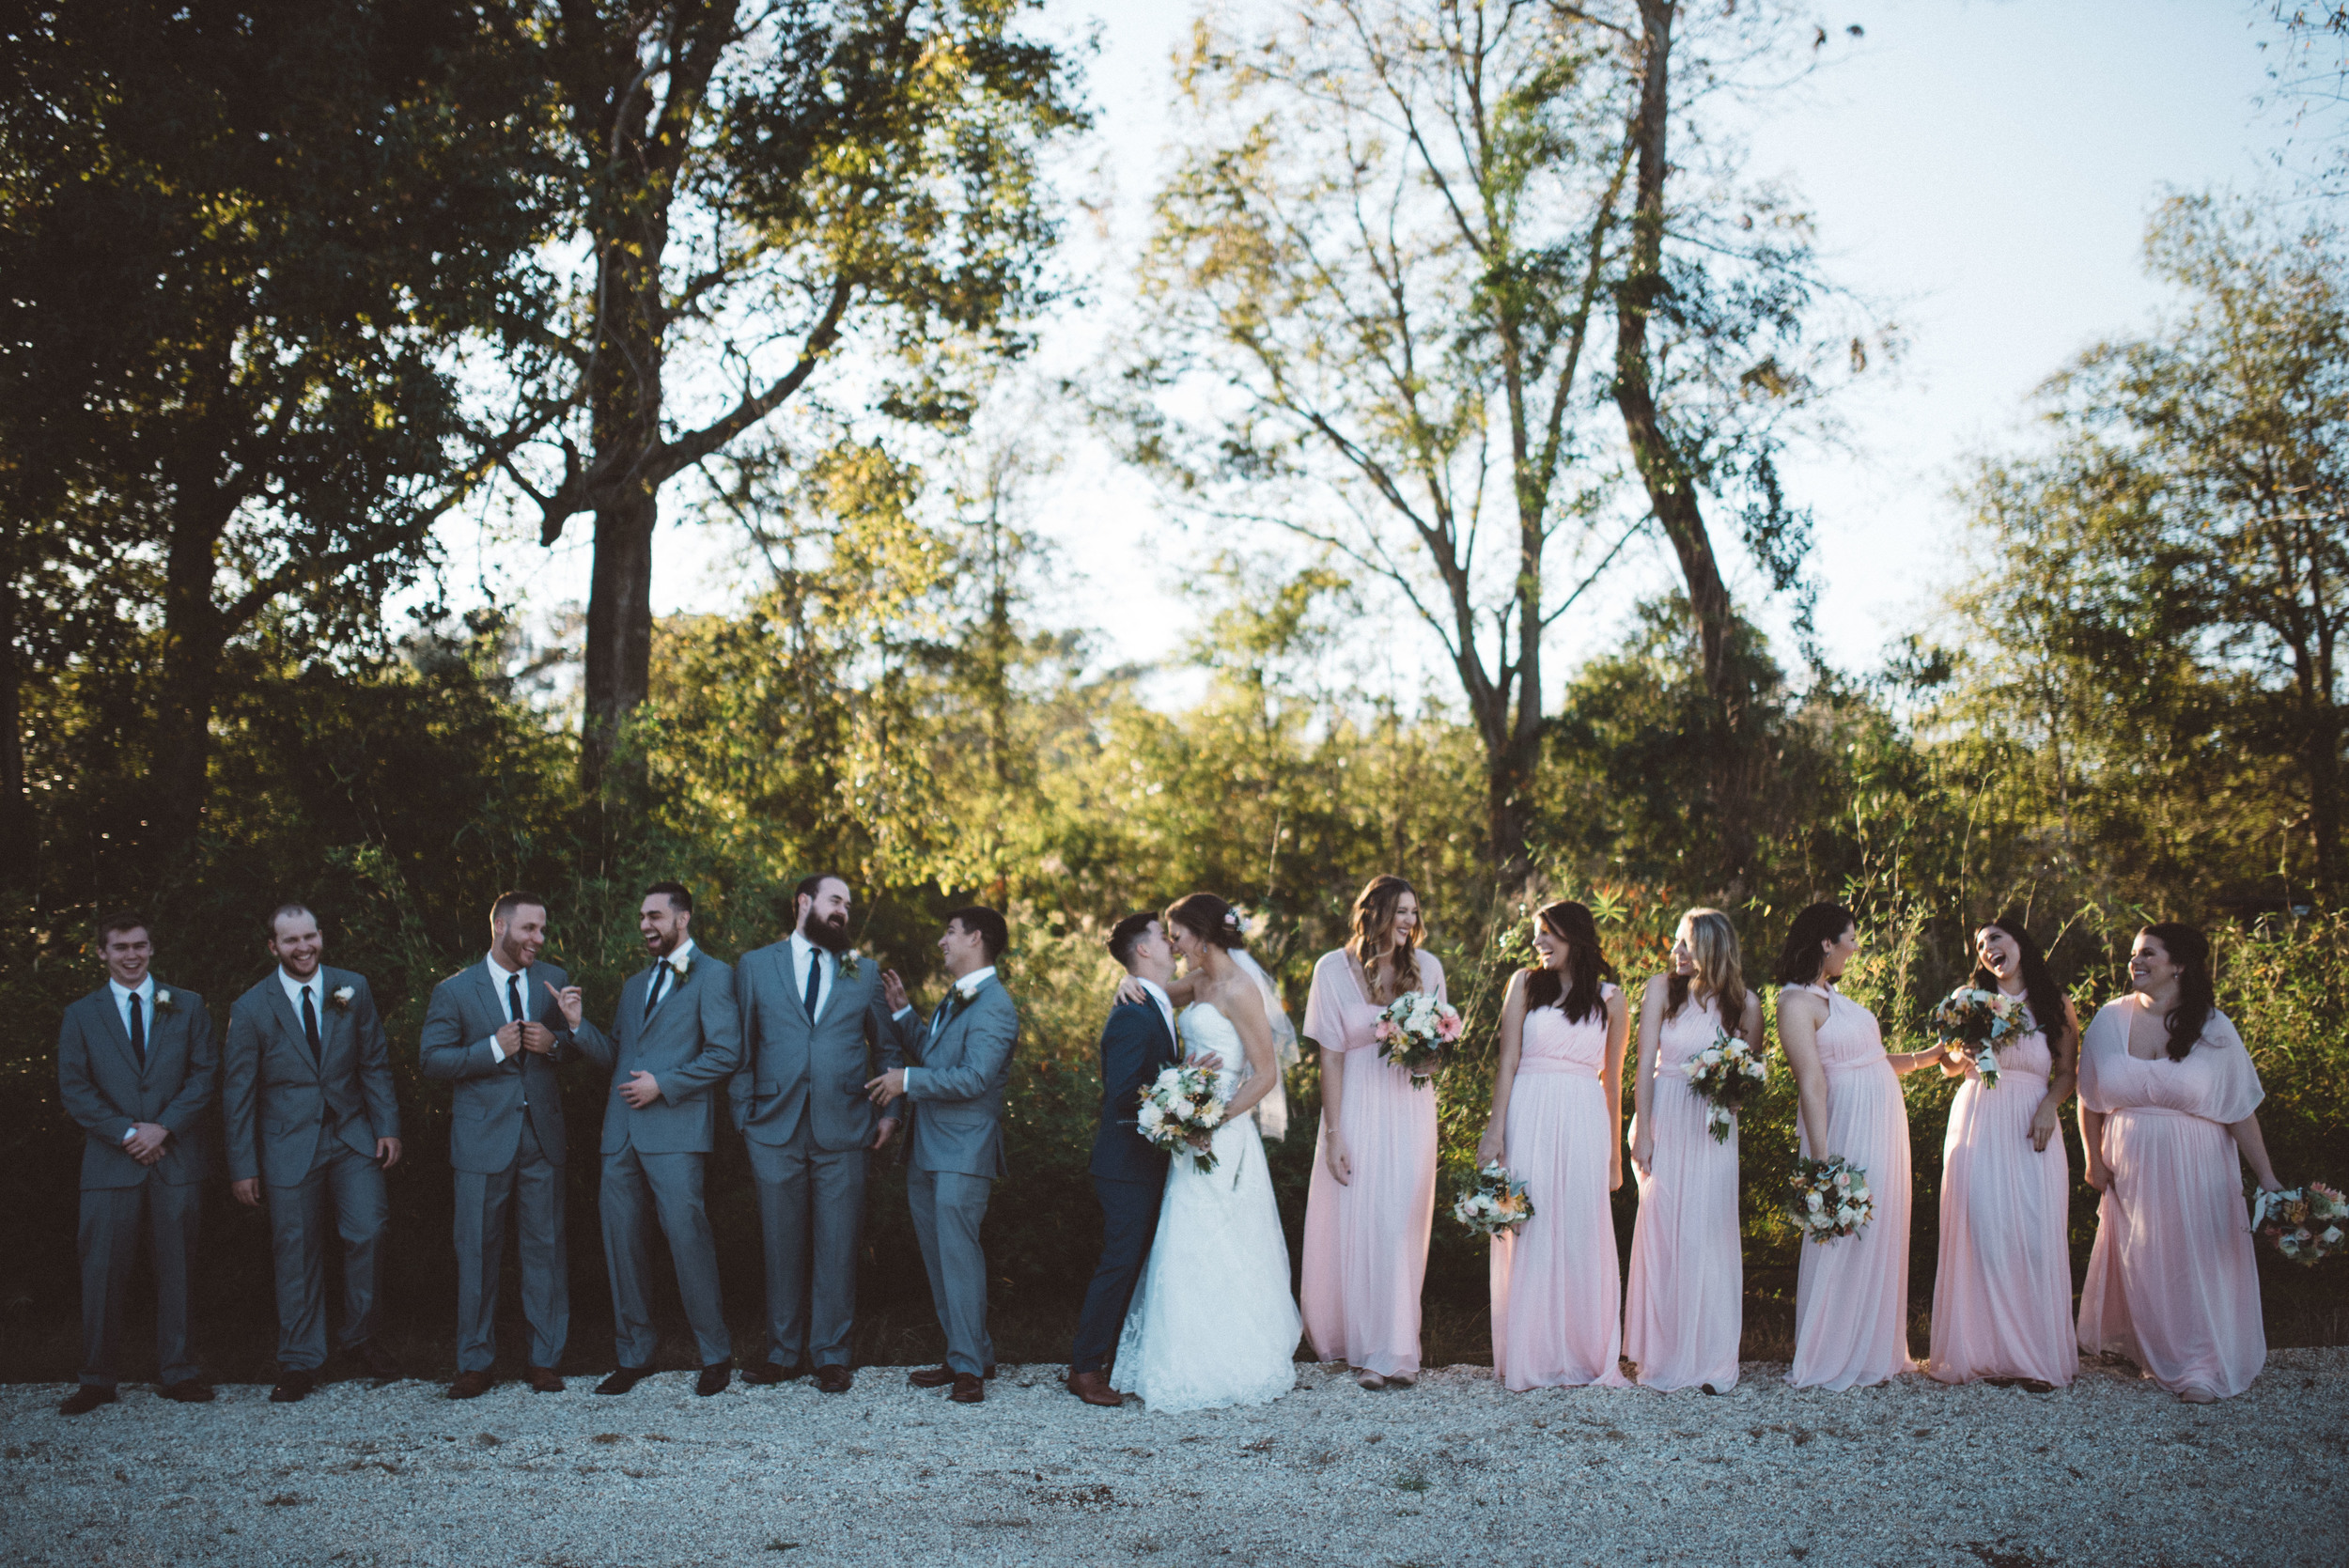 ofRen_louisianaweddings043.JPG